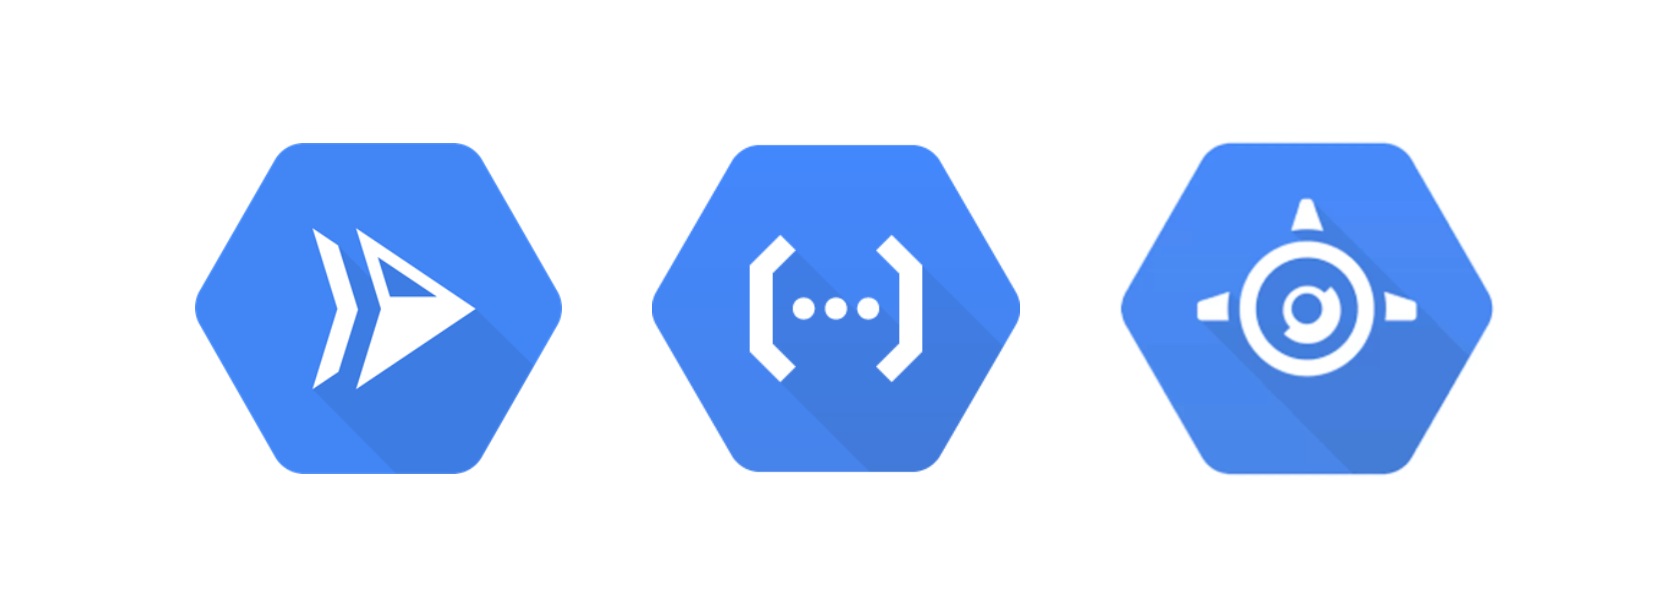 /images/2021-02-08-gcp-serverless-comparation/gcp-serverless.png